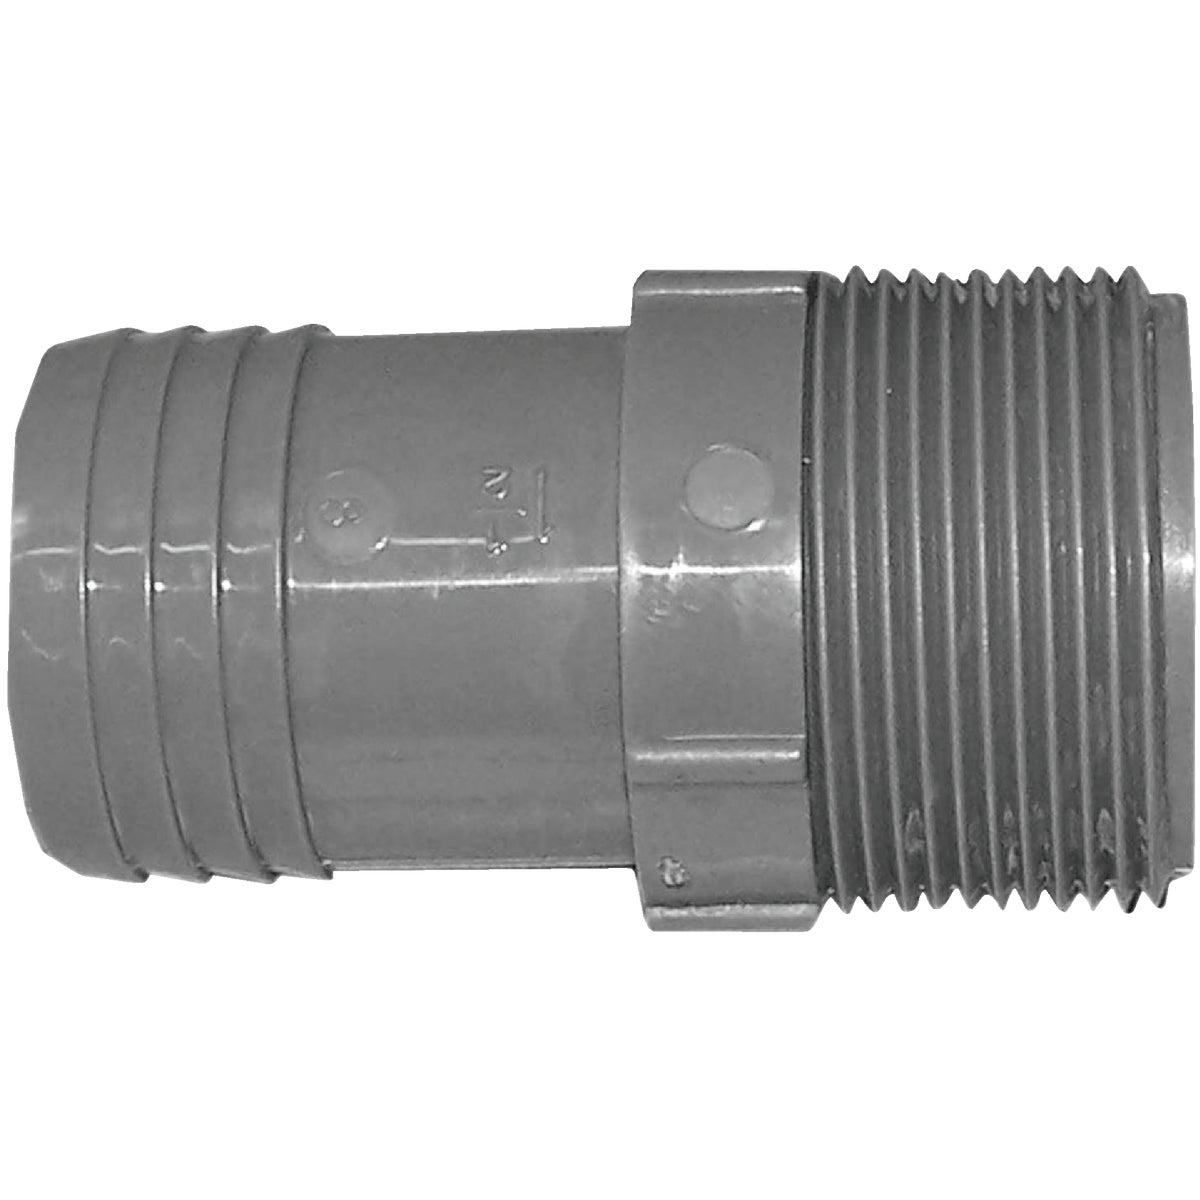 """1-1/2""""POLY MXINS ADAPTER - 350415 by Genova Inc"""